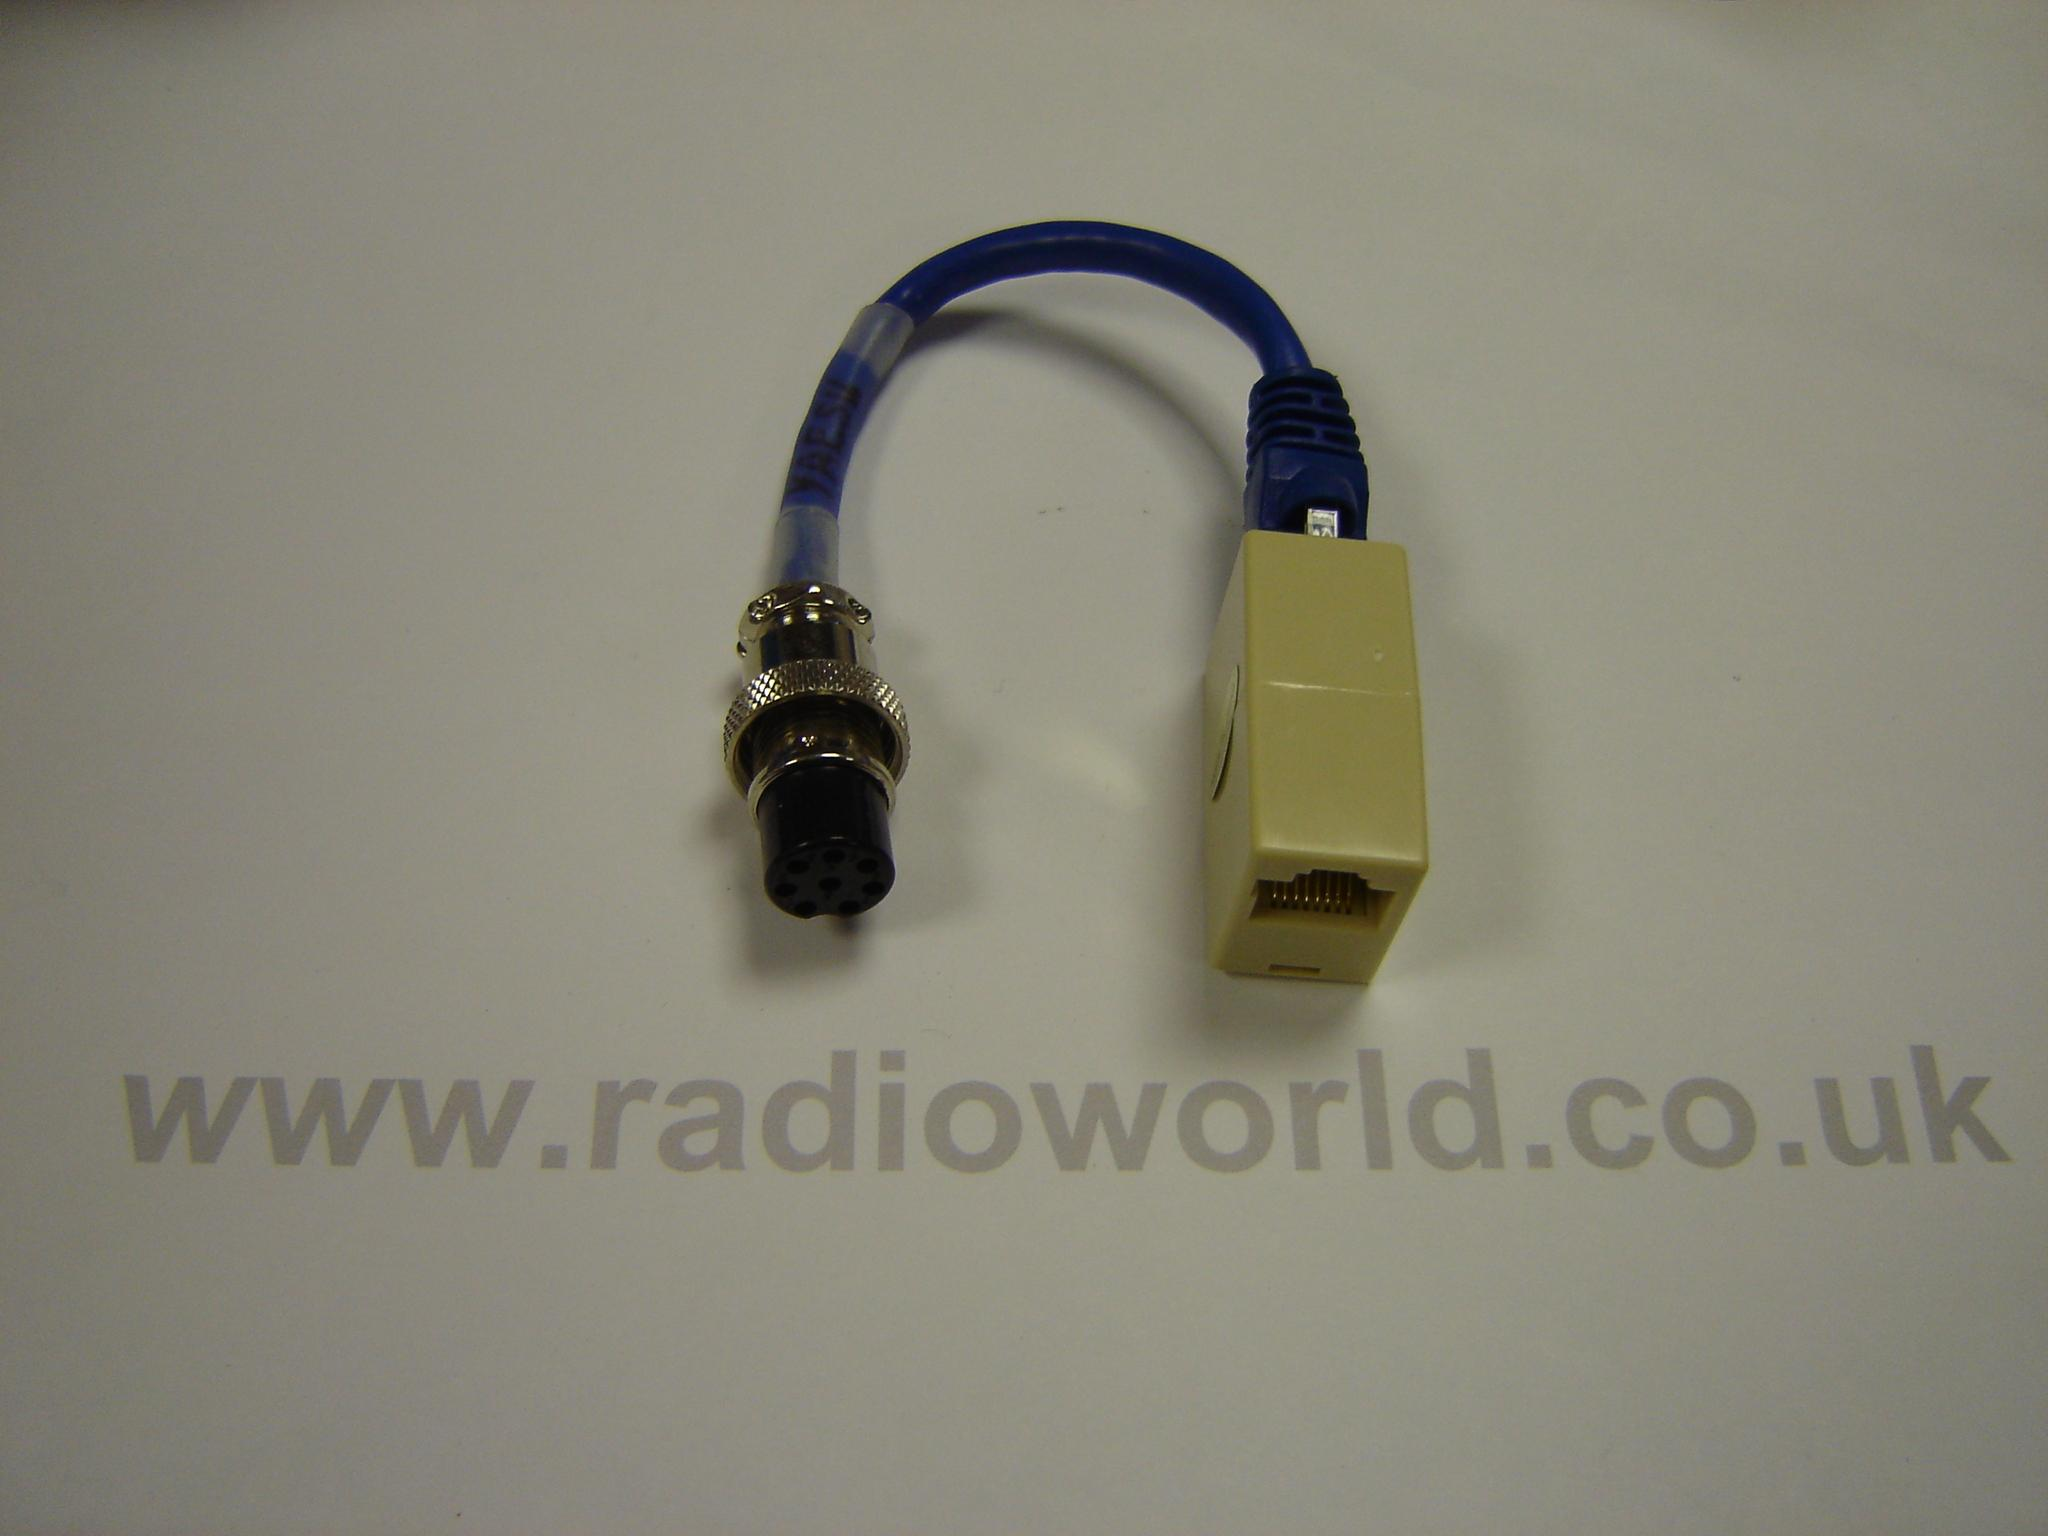 W2IHY Yaesu Adaptor Cable Fitted with 8 Pin & Large Modular Lead